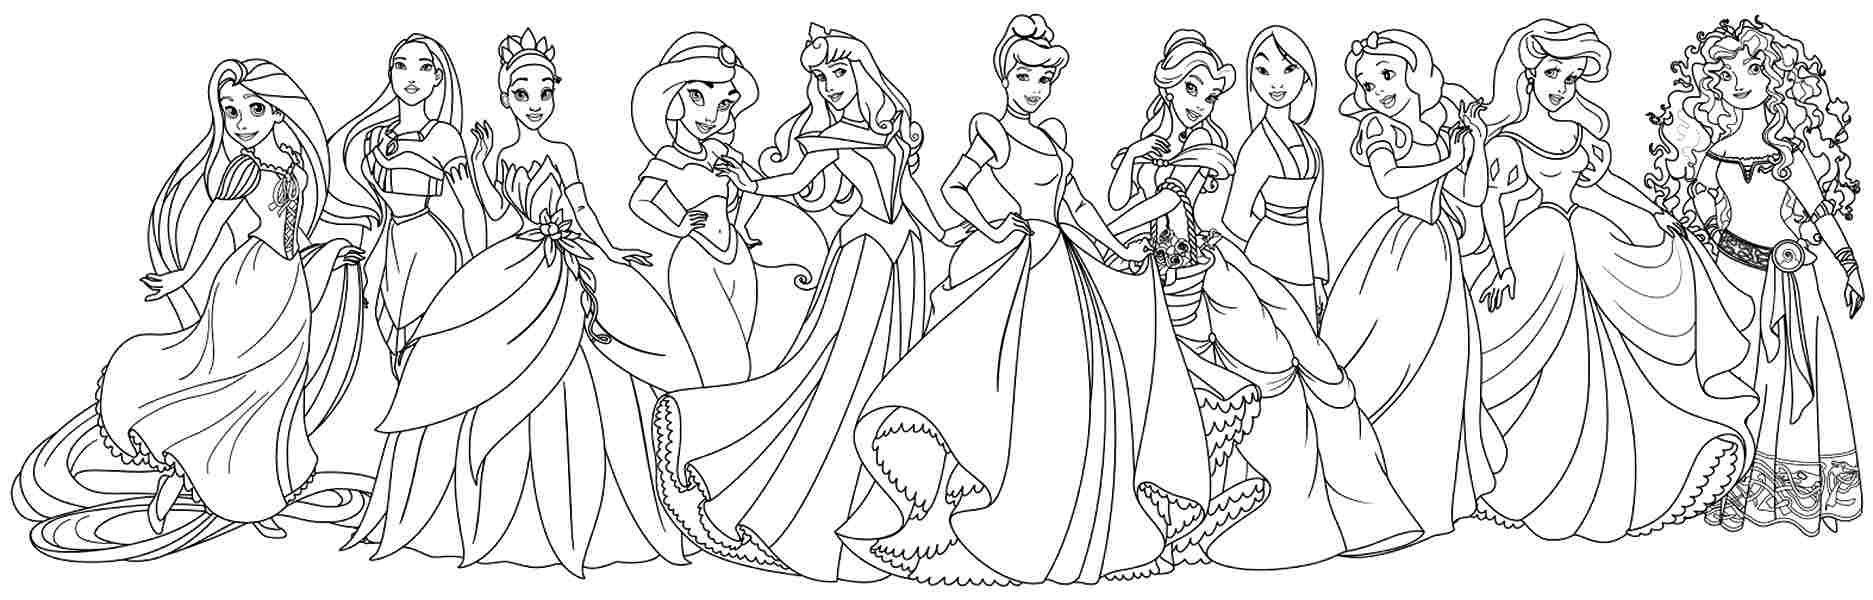 Disney Pictures Of Photo Albums Disney Princess Coloring Pages